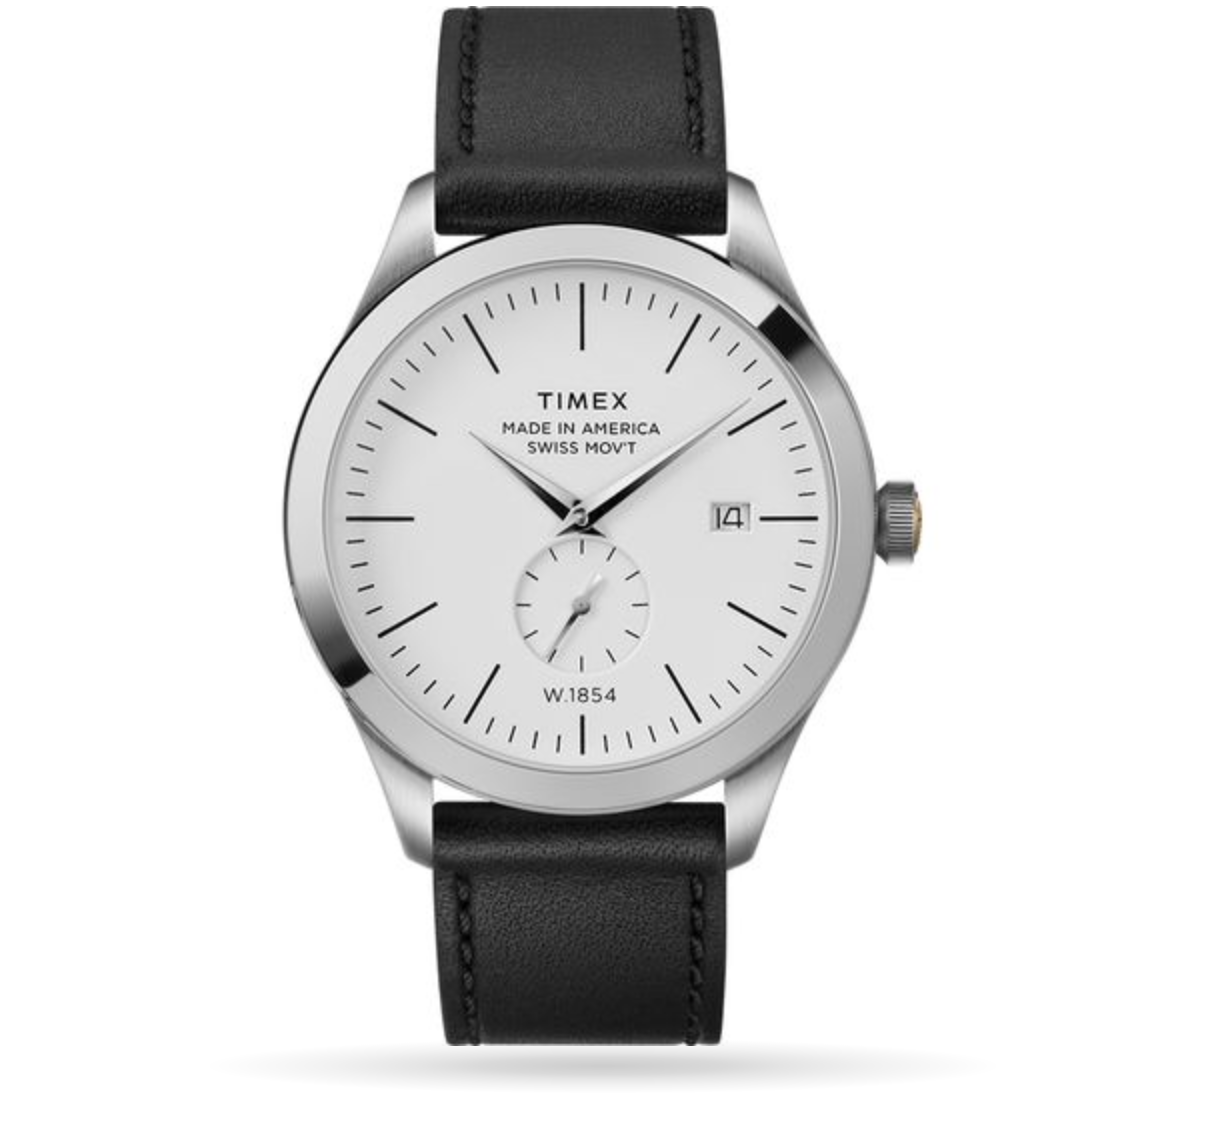 Timex American Documents® 41mm Black Leather Strap Watch